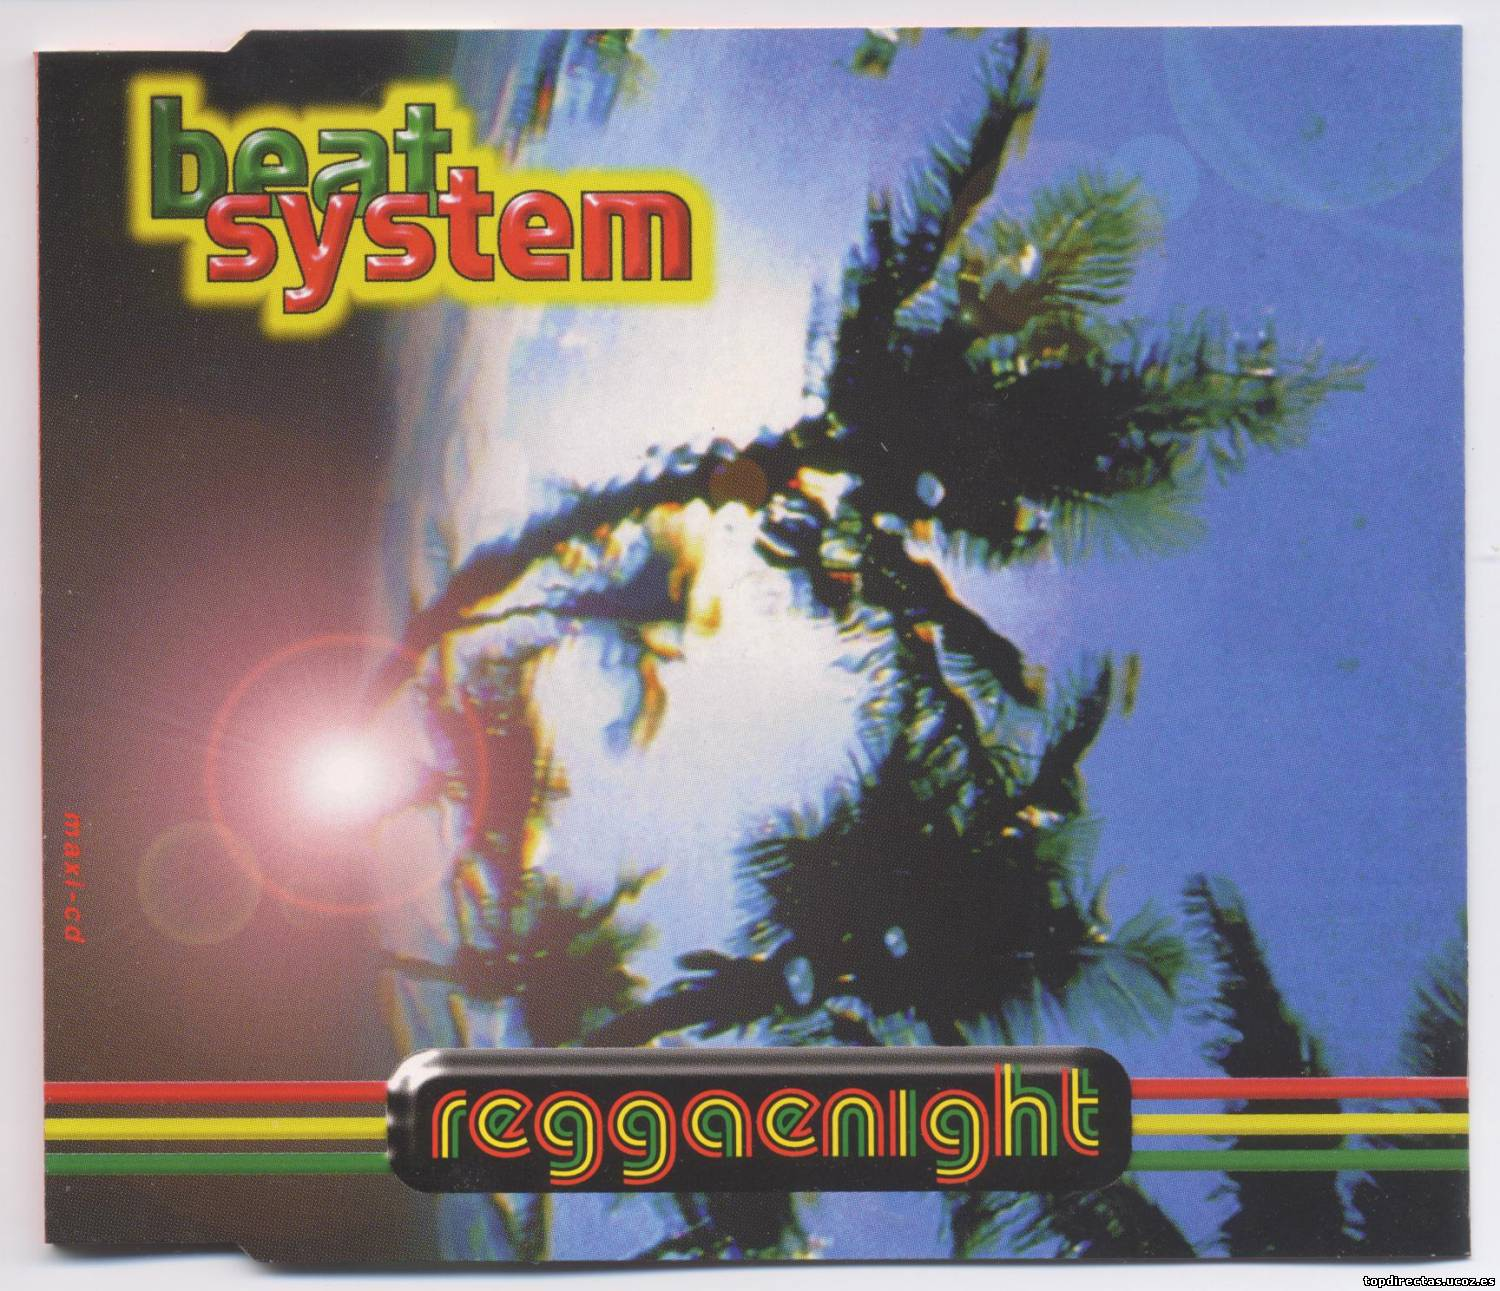 Beat System - Reggaenight (Maxi-CD) 1996